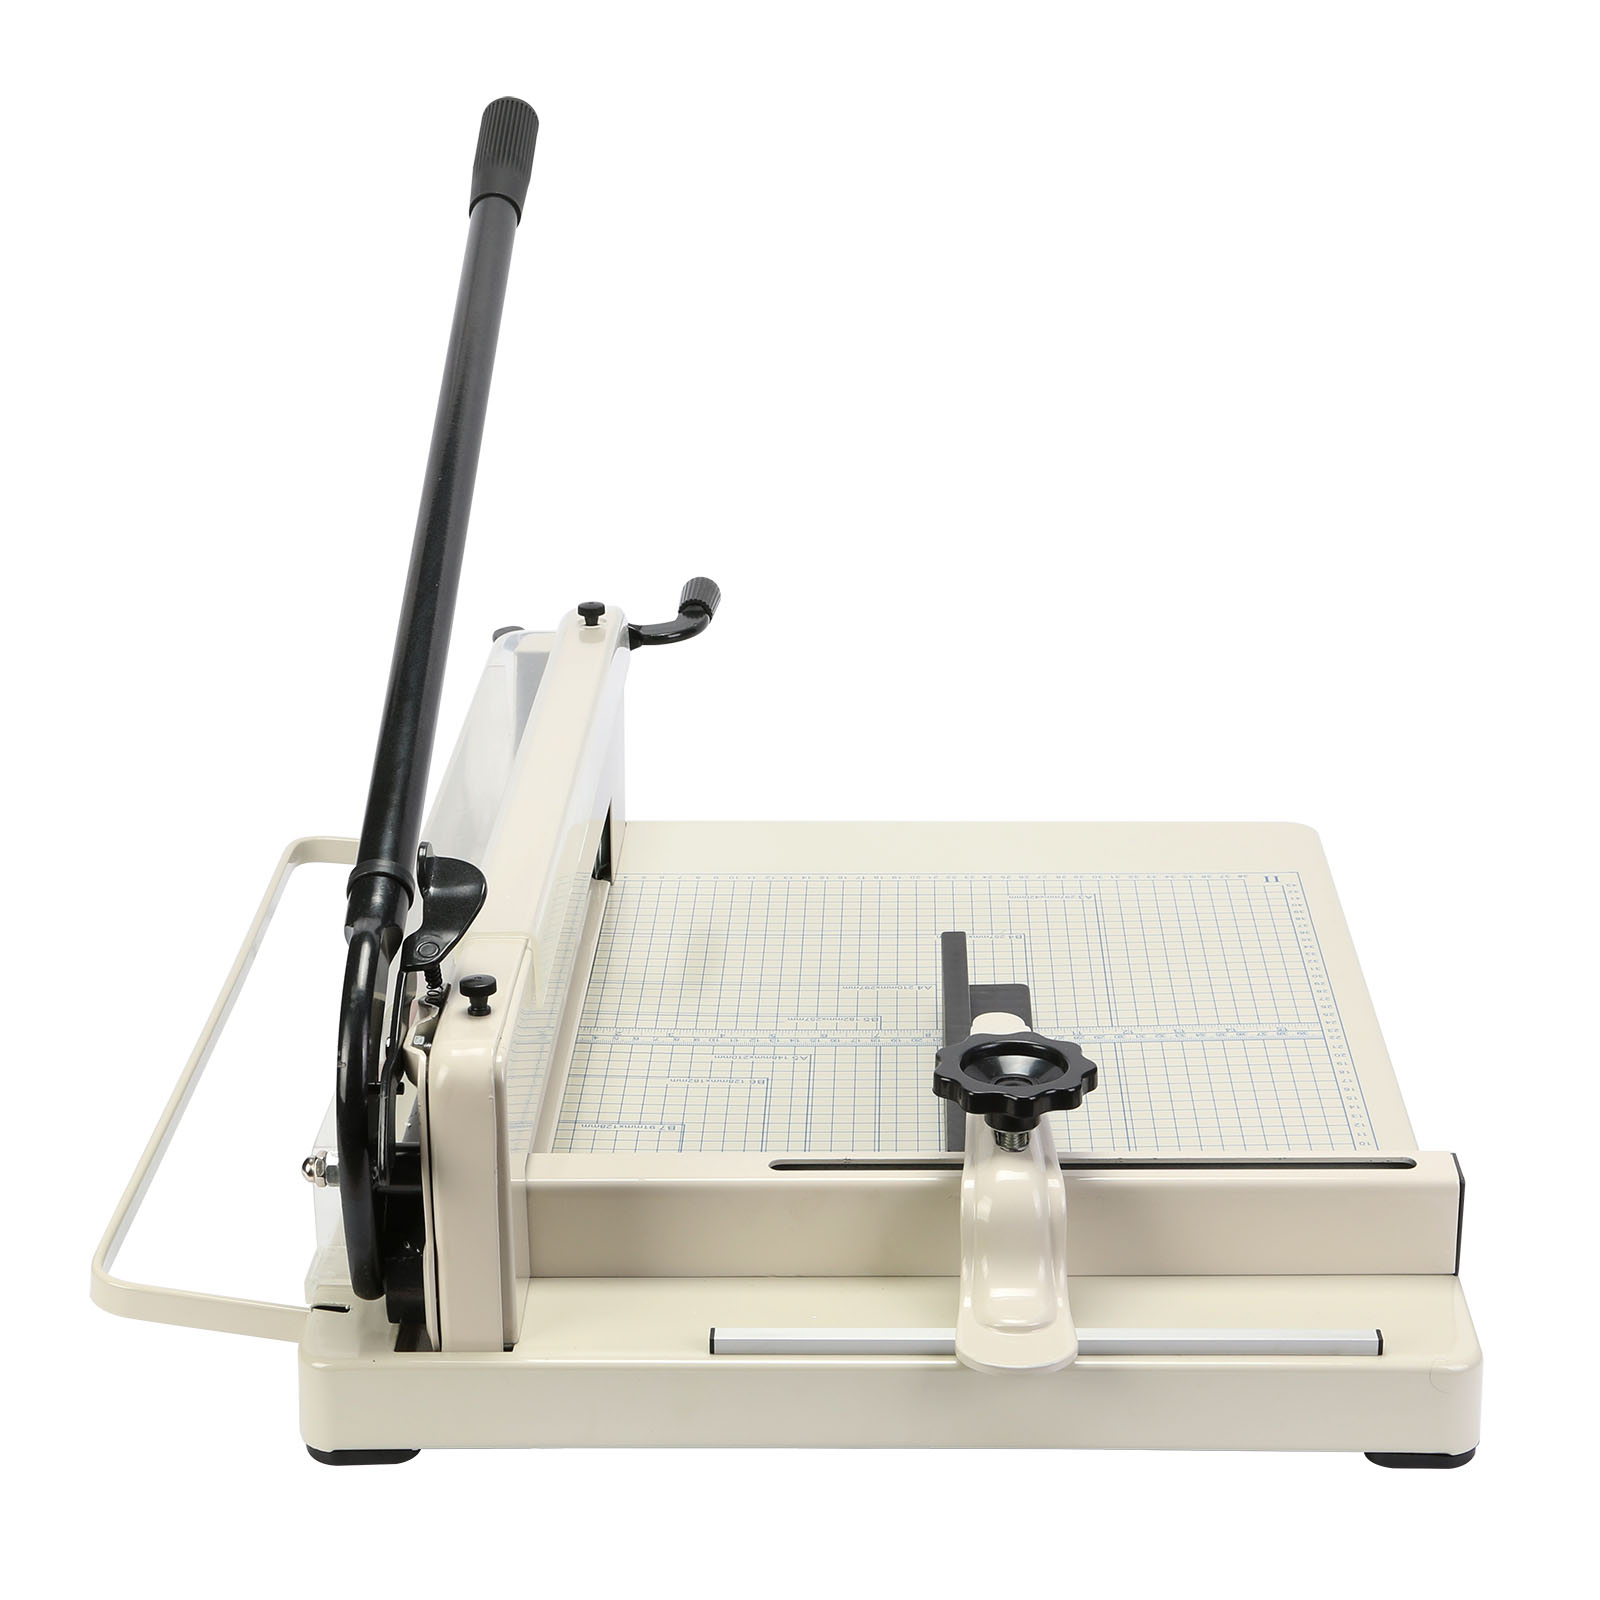 used paper cutter Our current inventory of used paper cutters includes manual, electric, and hydraulic models.